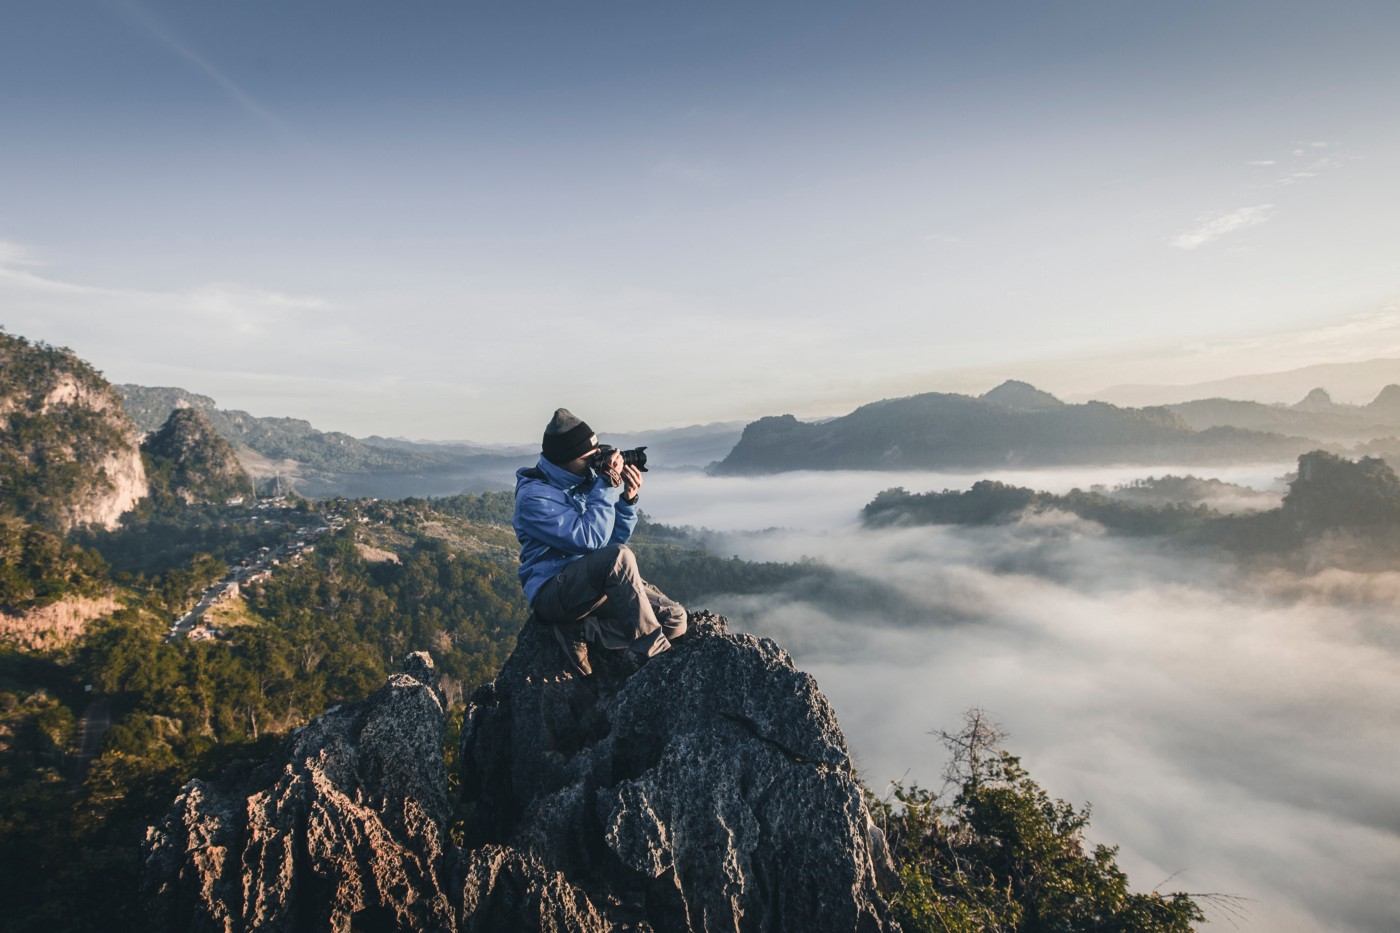 Man on top of a mountain taking photos Image: unsplash.com